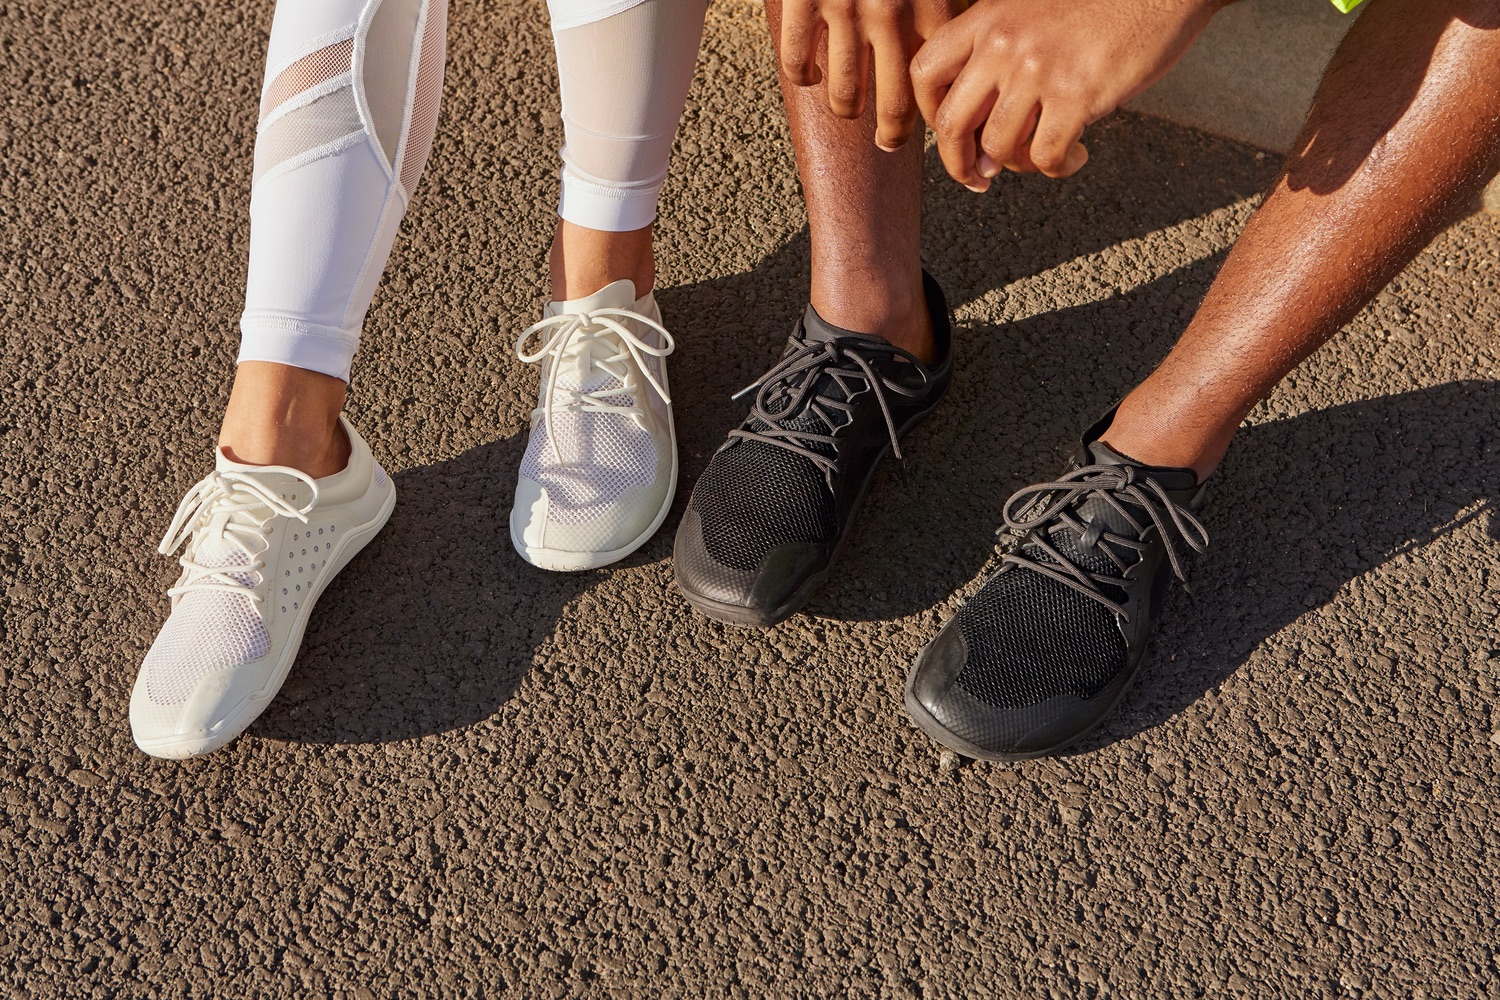 Vivobarefoot reconstructed its signature sneakers with fewer but eco-friendlier materials.